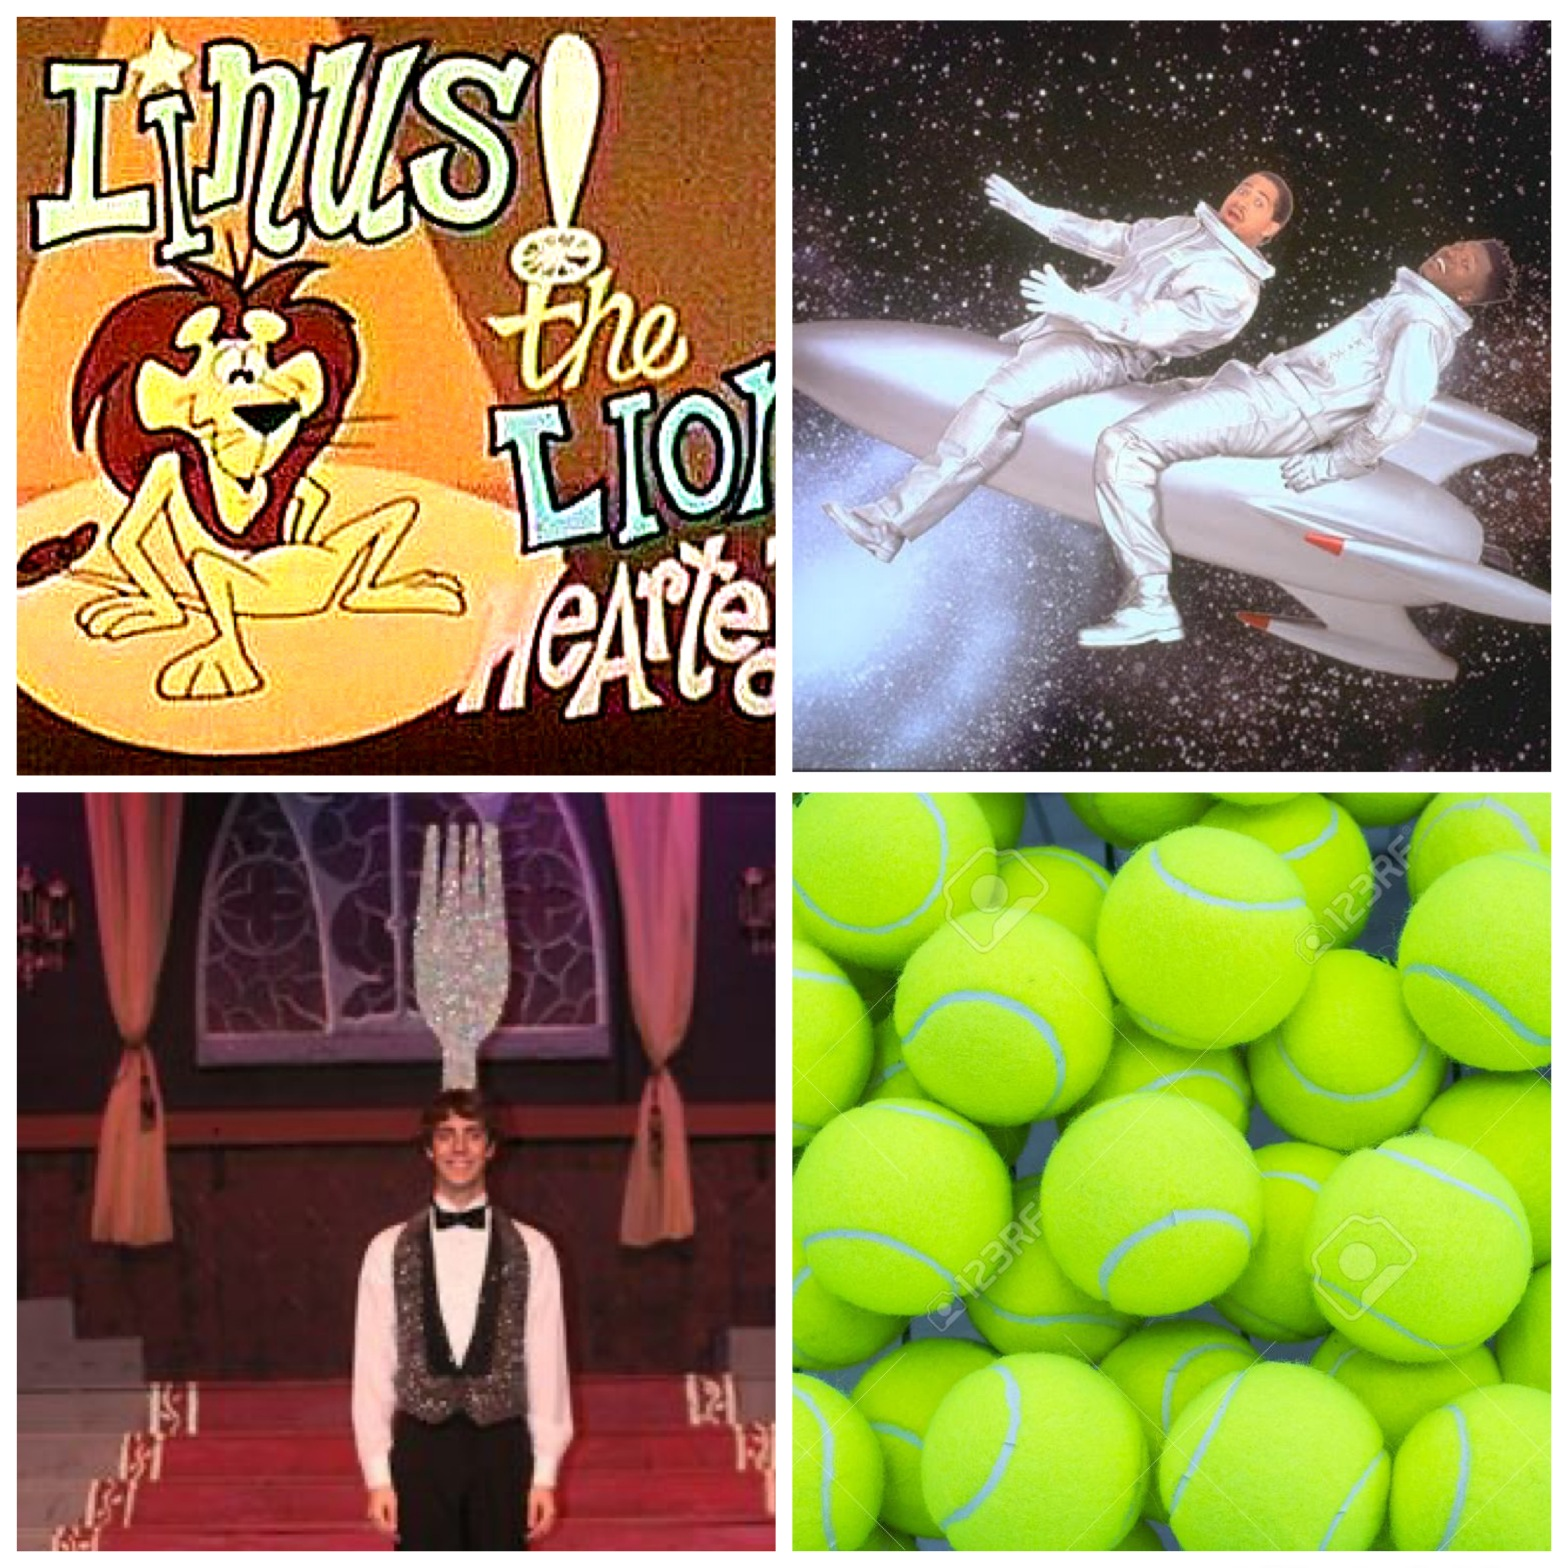 Linus the Lionhearted, Homeboys in Outer Space, a dancing fork, and tennis balls. This will all make sense if you listen to the podcast episode.